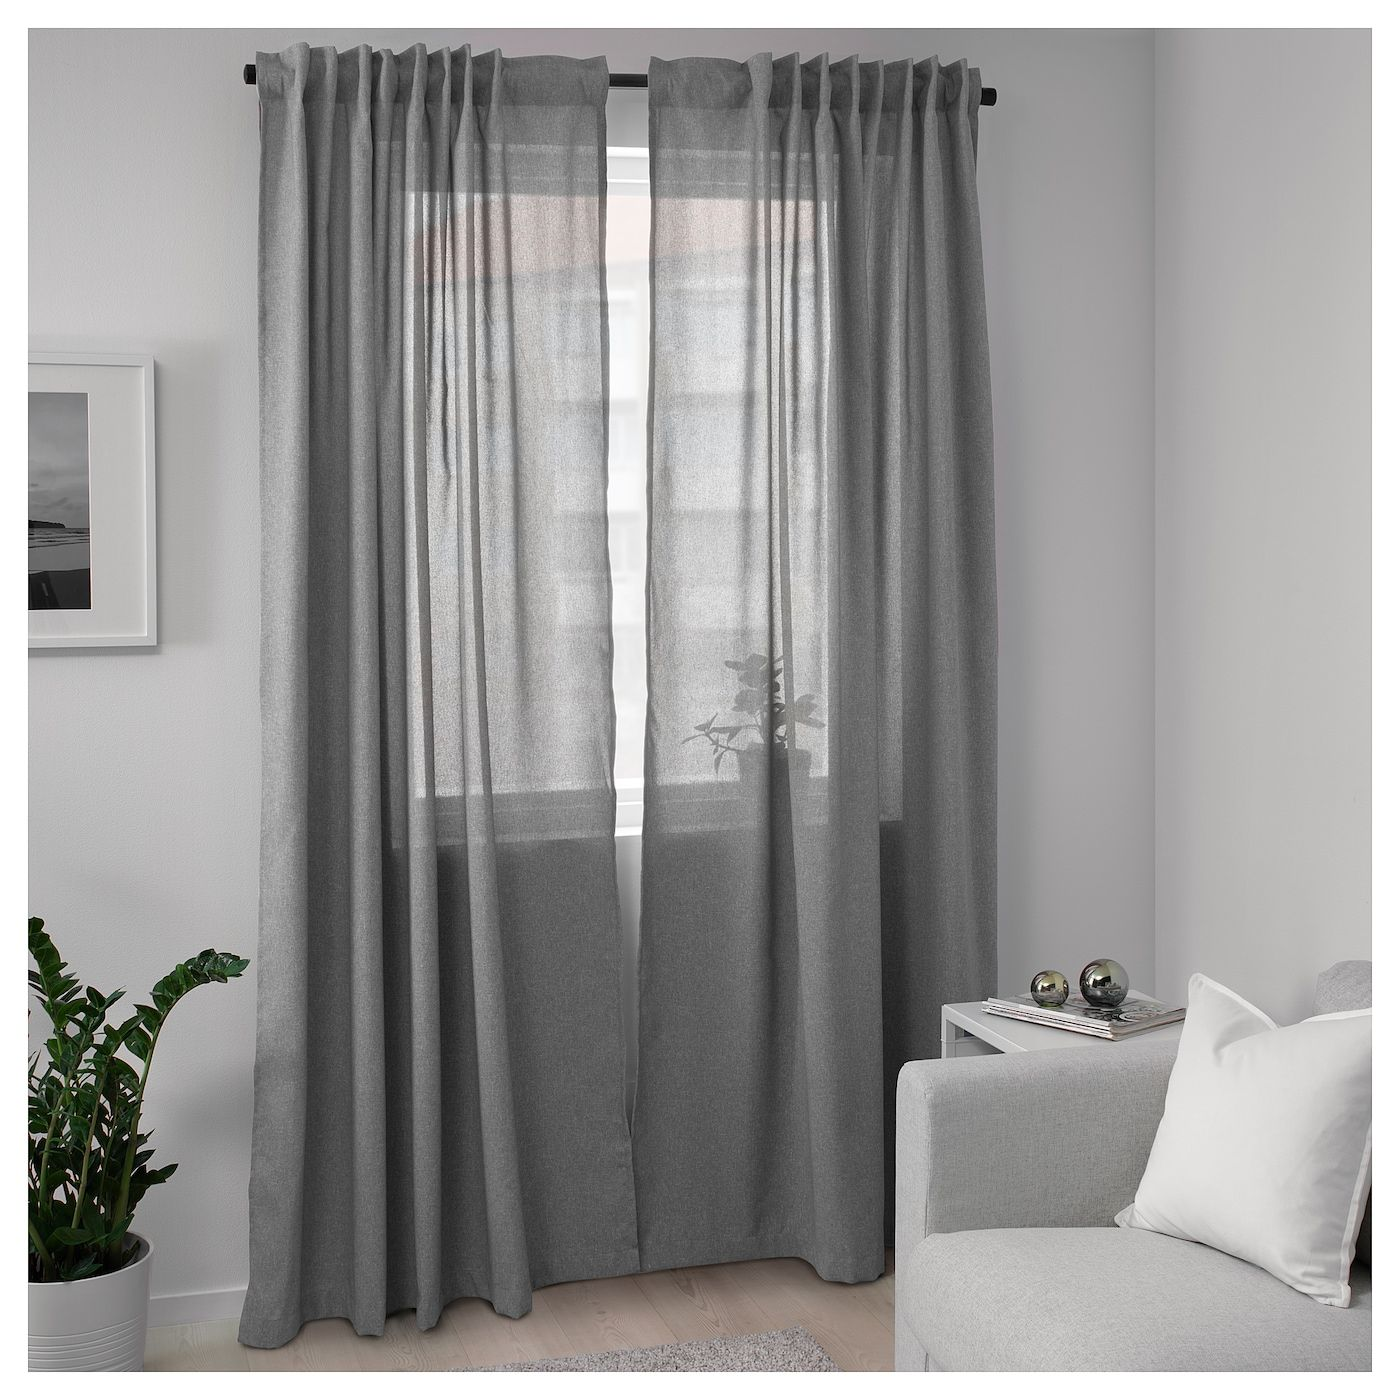 Hannalena Rideaux 2 Pieces Gris 145x300 Cm Ikea Grey Curtains Living Room Room Darkening Curtains Room Darkening